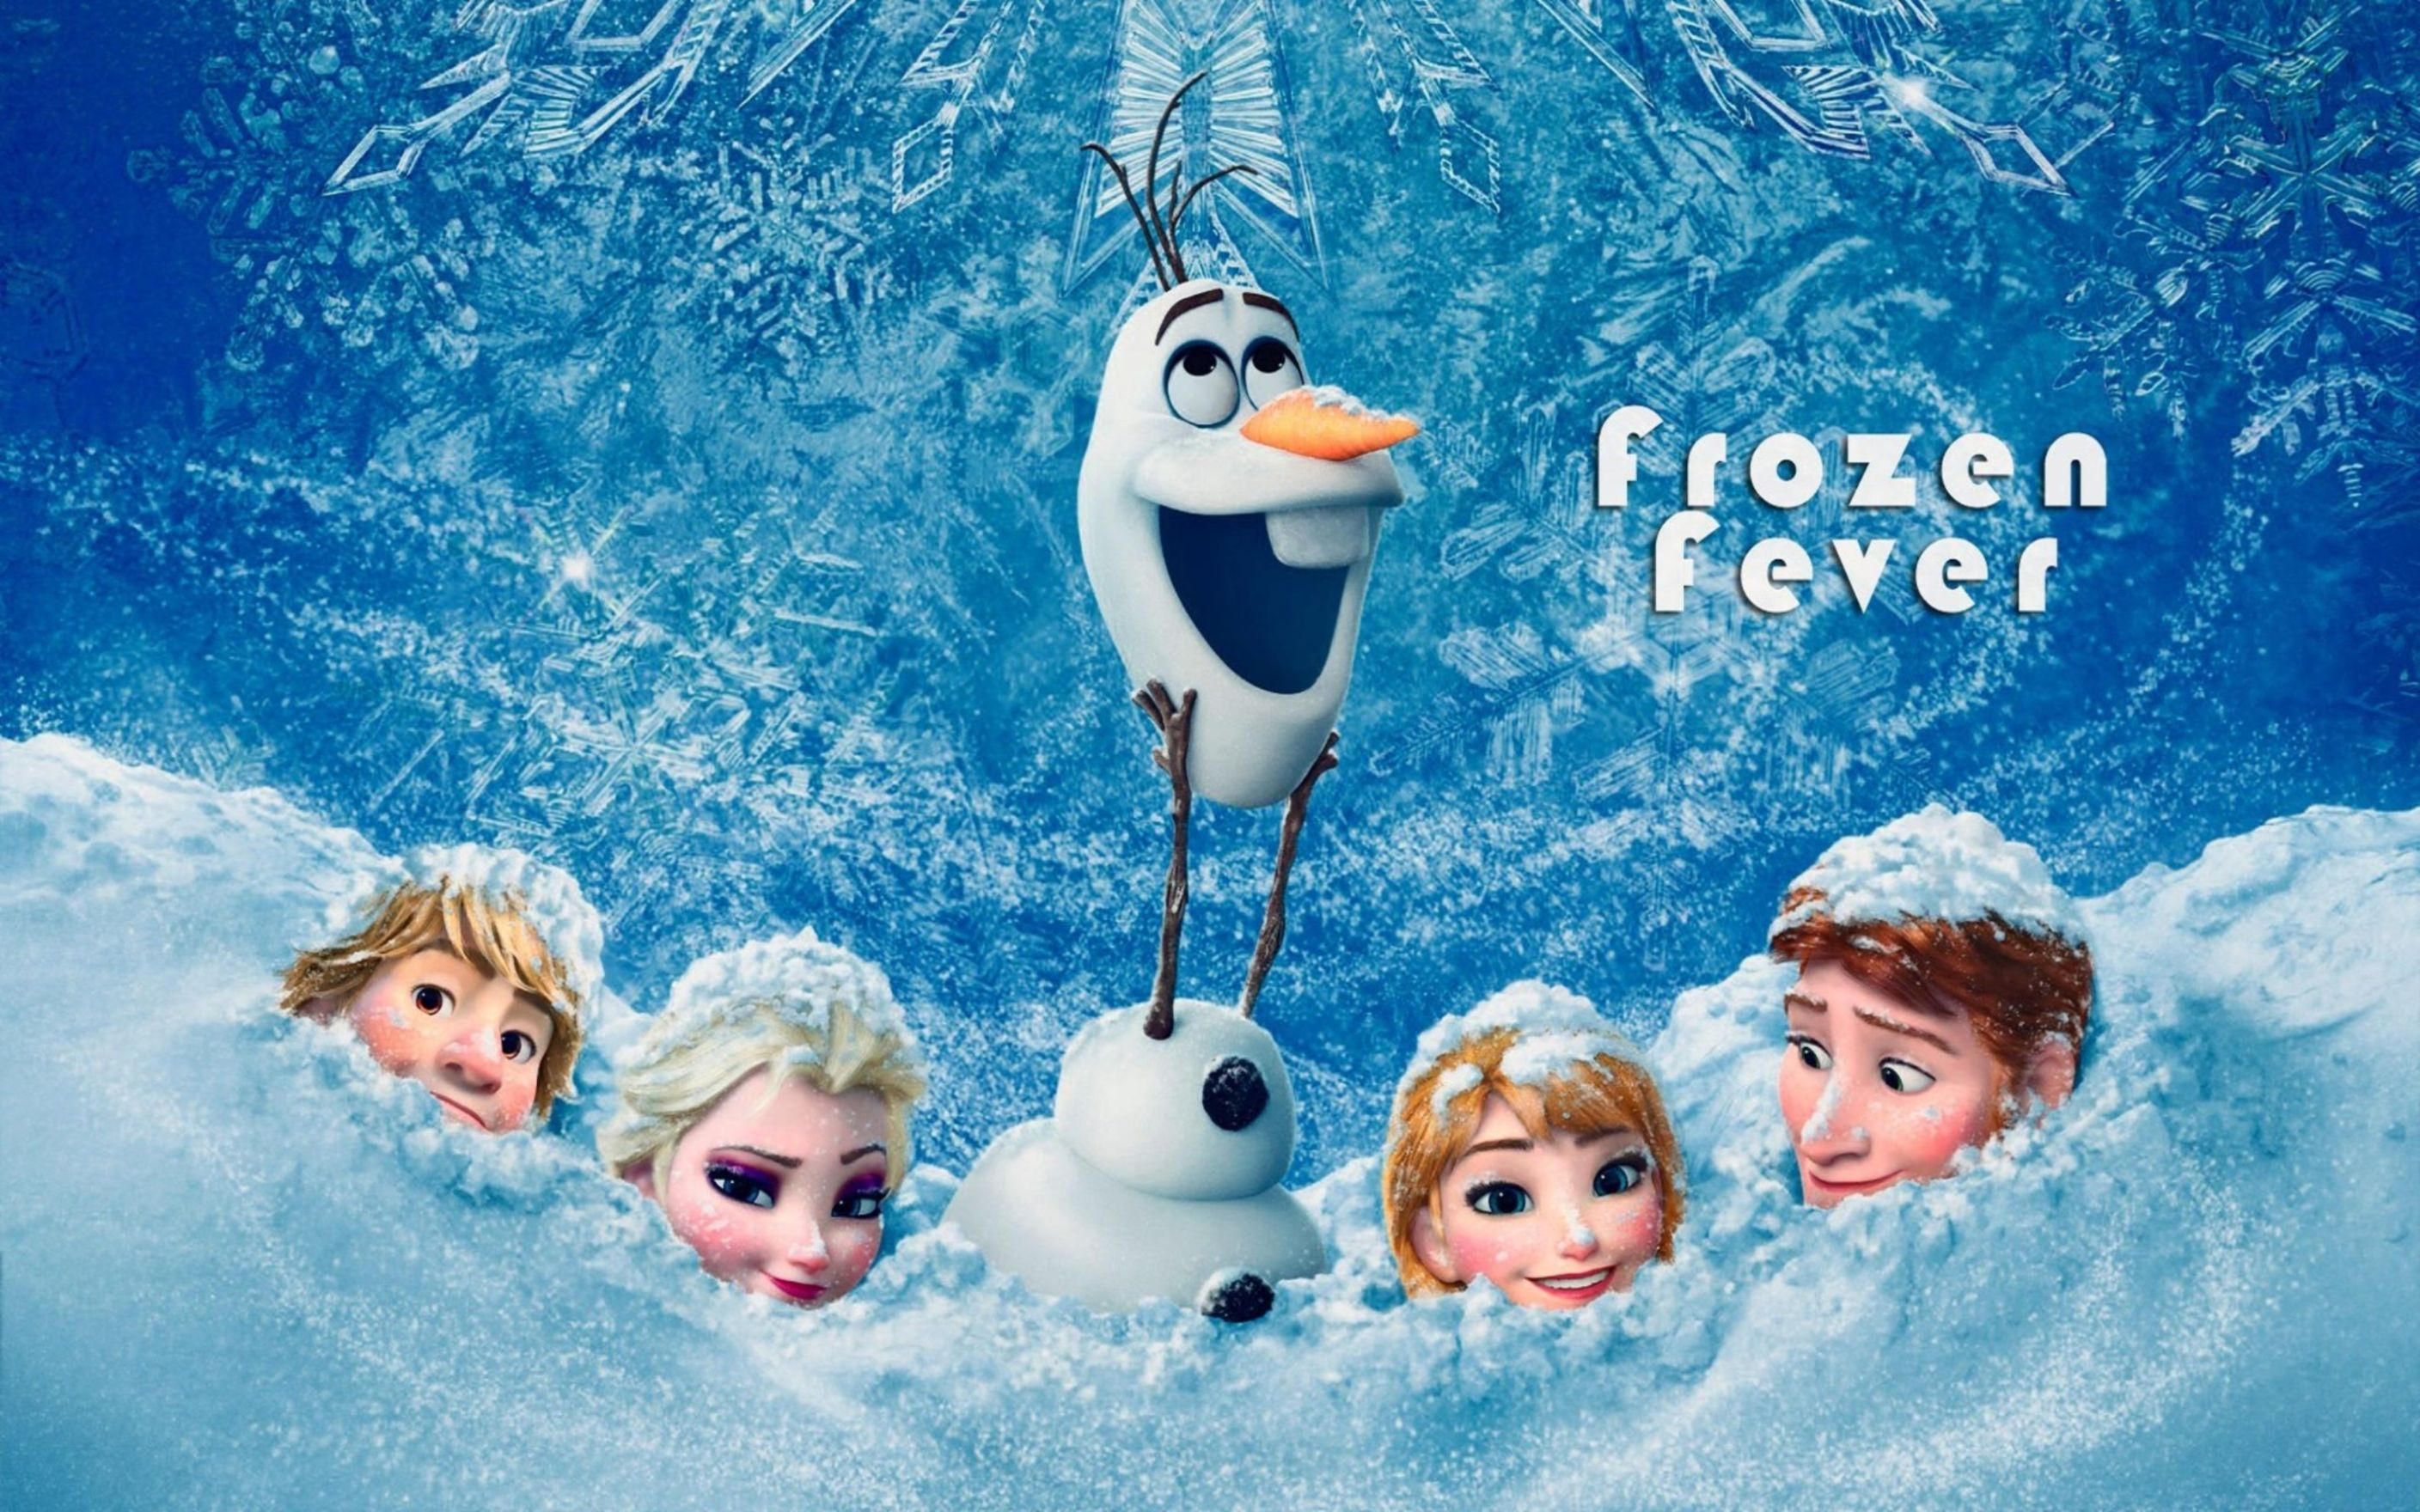 frozen fever movie 2015 wallpaper: desktop hd wallpaper - download